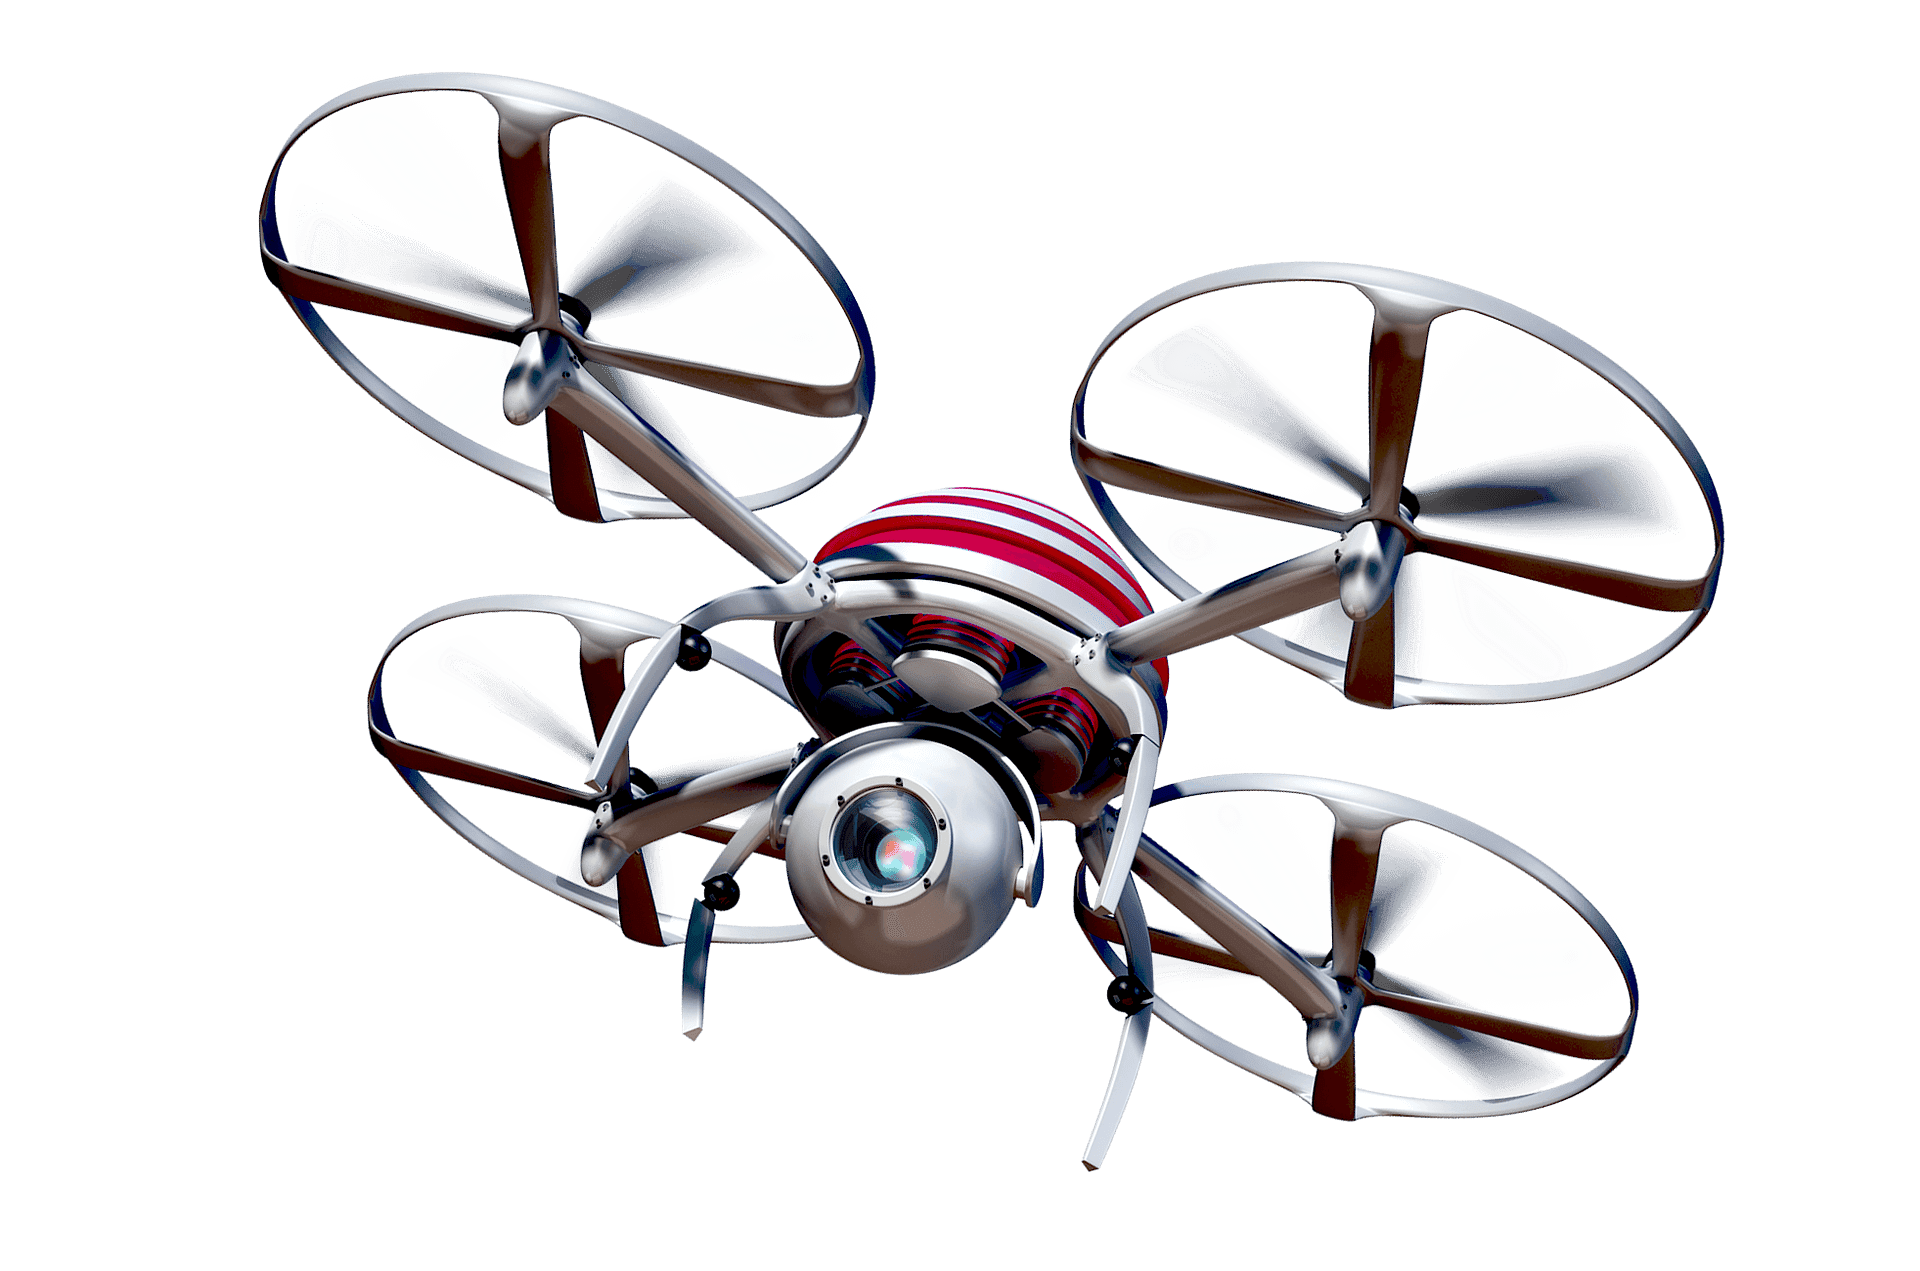 content/ja-jp/images/repository/isc/2020/a-spy-drone-with-large-camera-lens.png